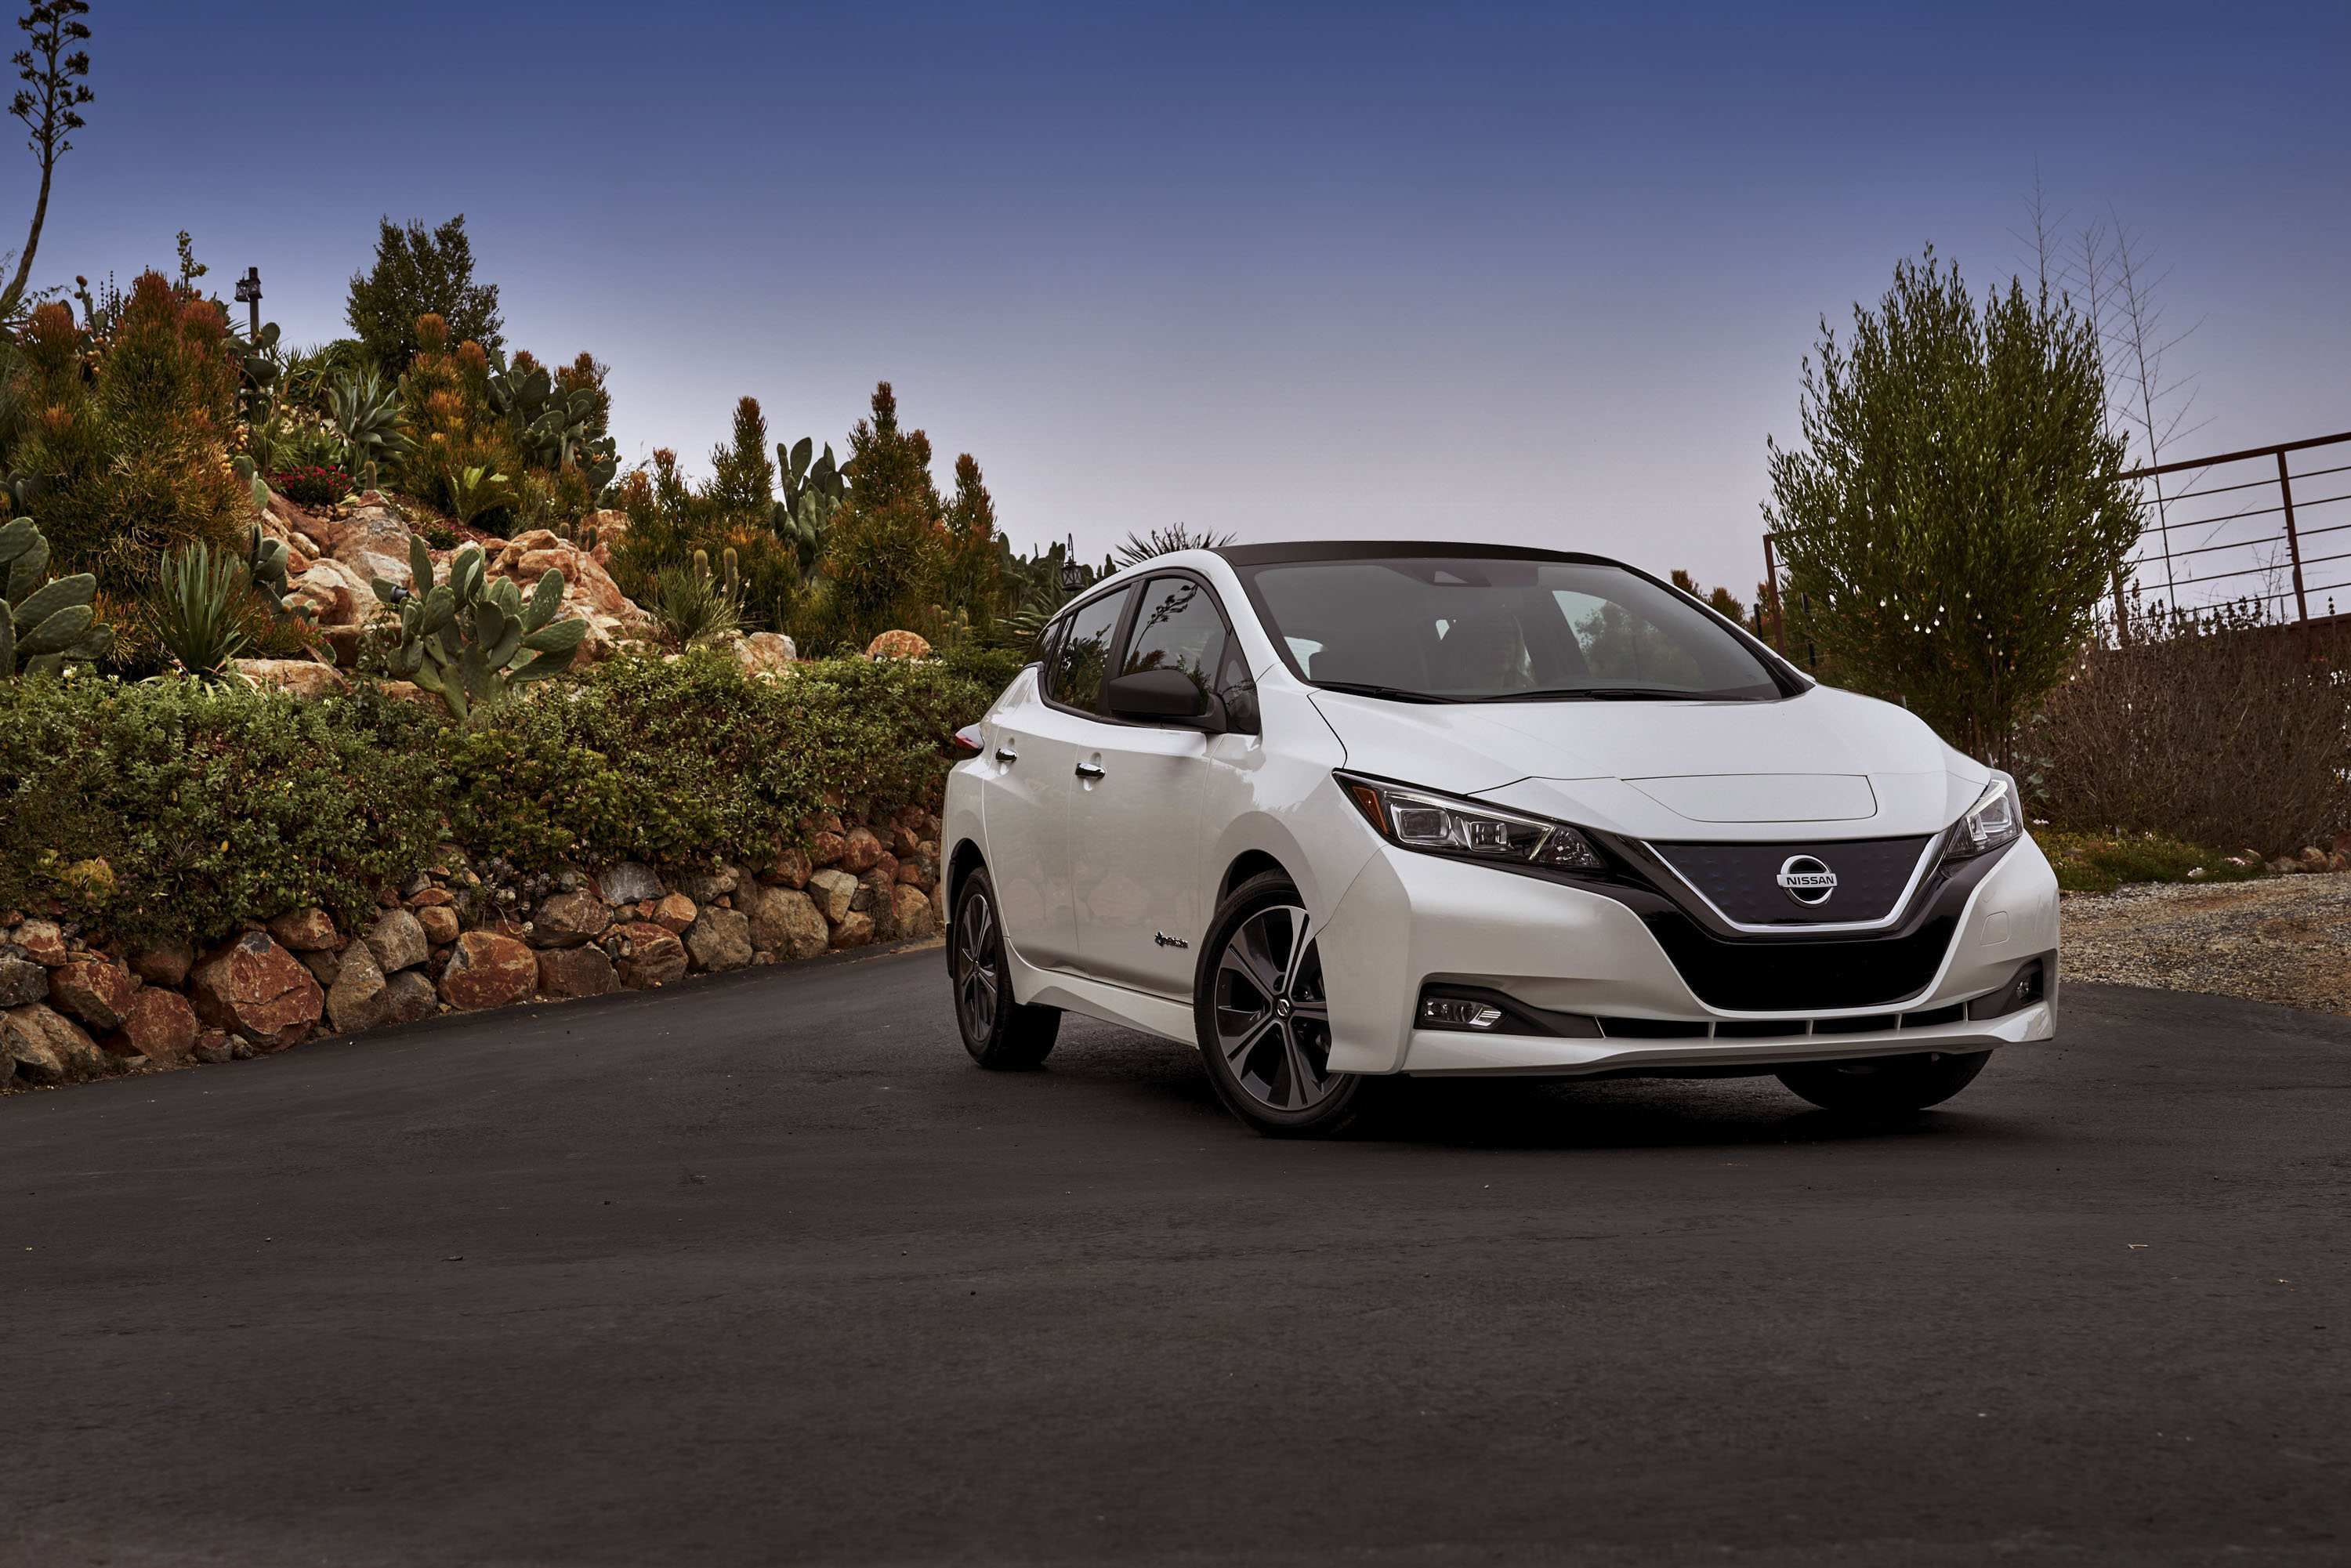 58 Great 2020 Nissan Leaf Specs and Review by 2020 Nissan Leaf